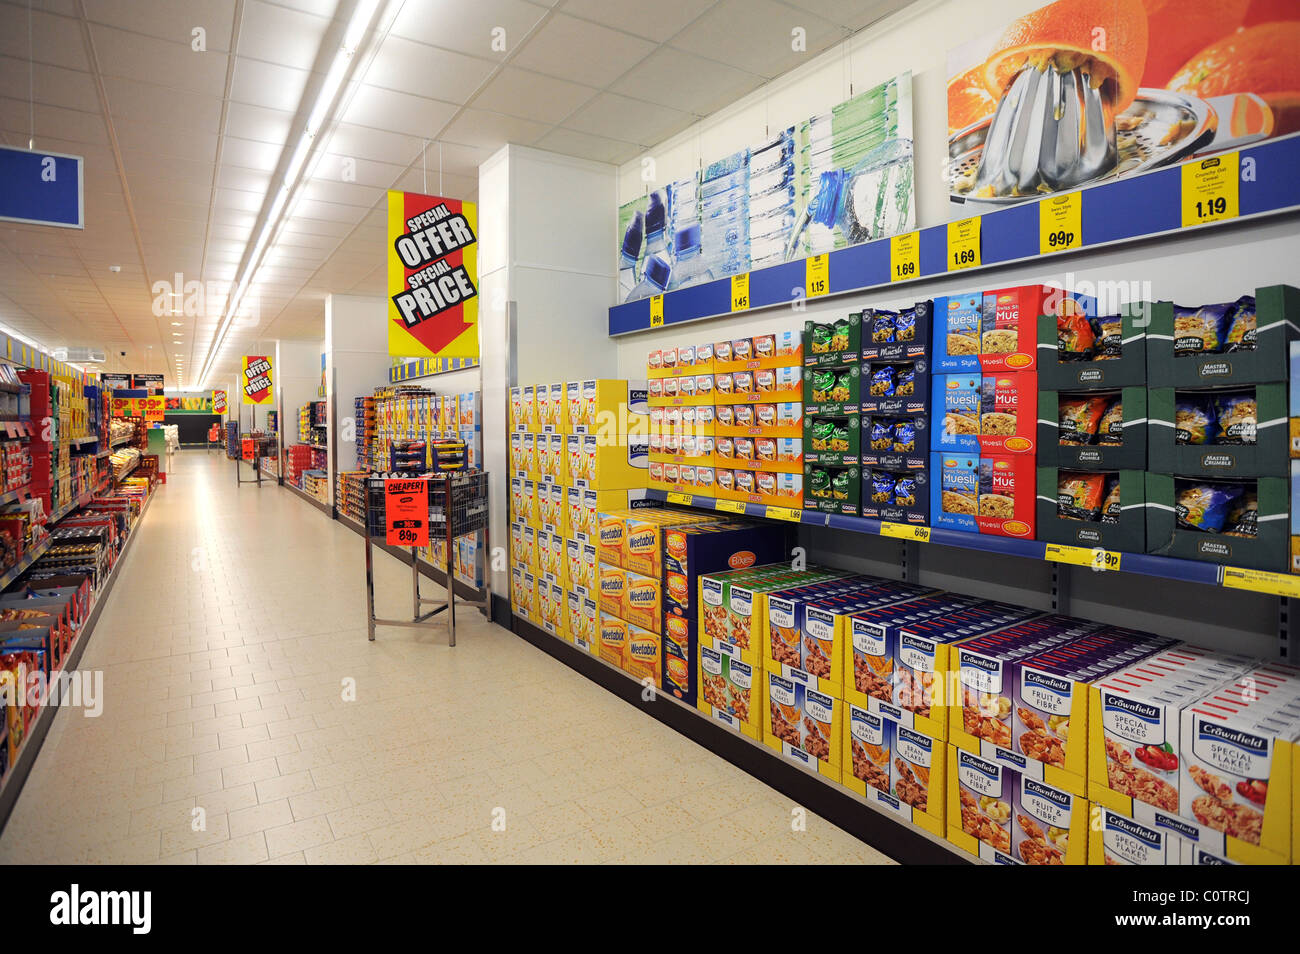 lidl discount supermarket in newhaven empty aisle with goods filling stock photo 34965970 alamy. Black Bedroom Furniture Sets. Home Design Ideas